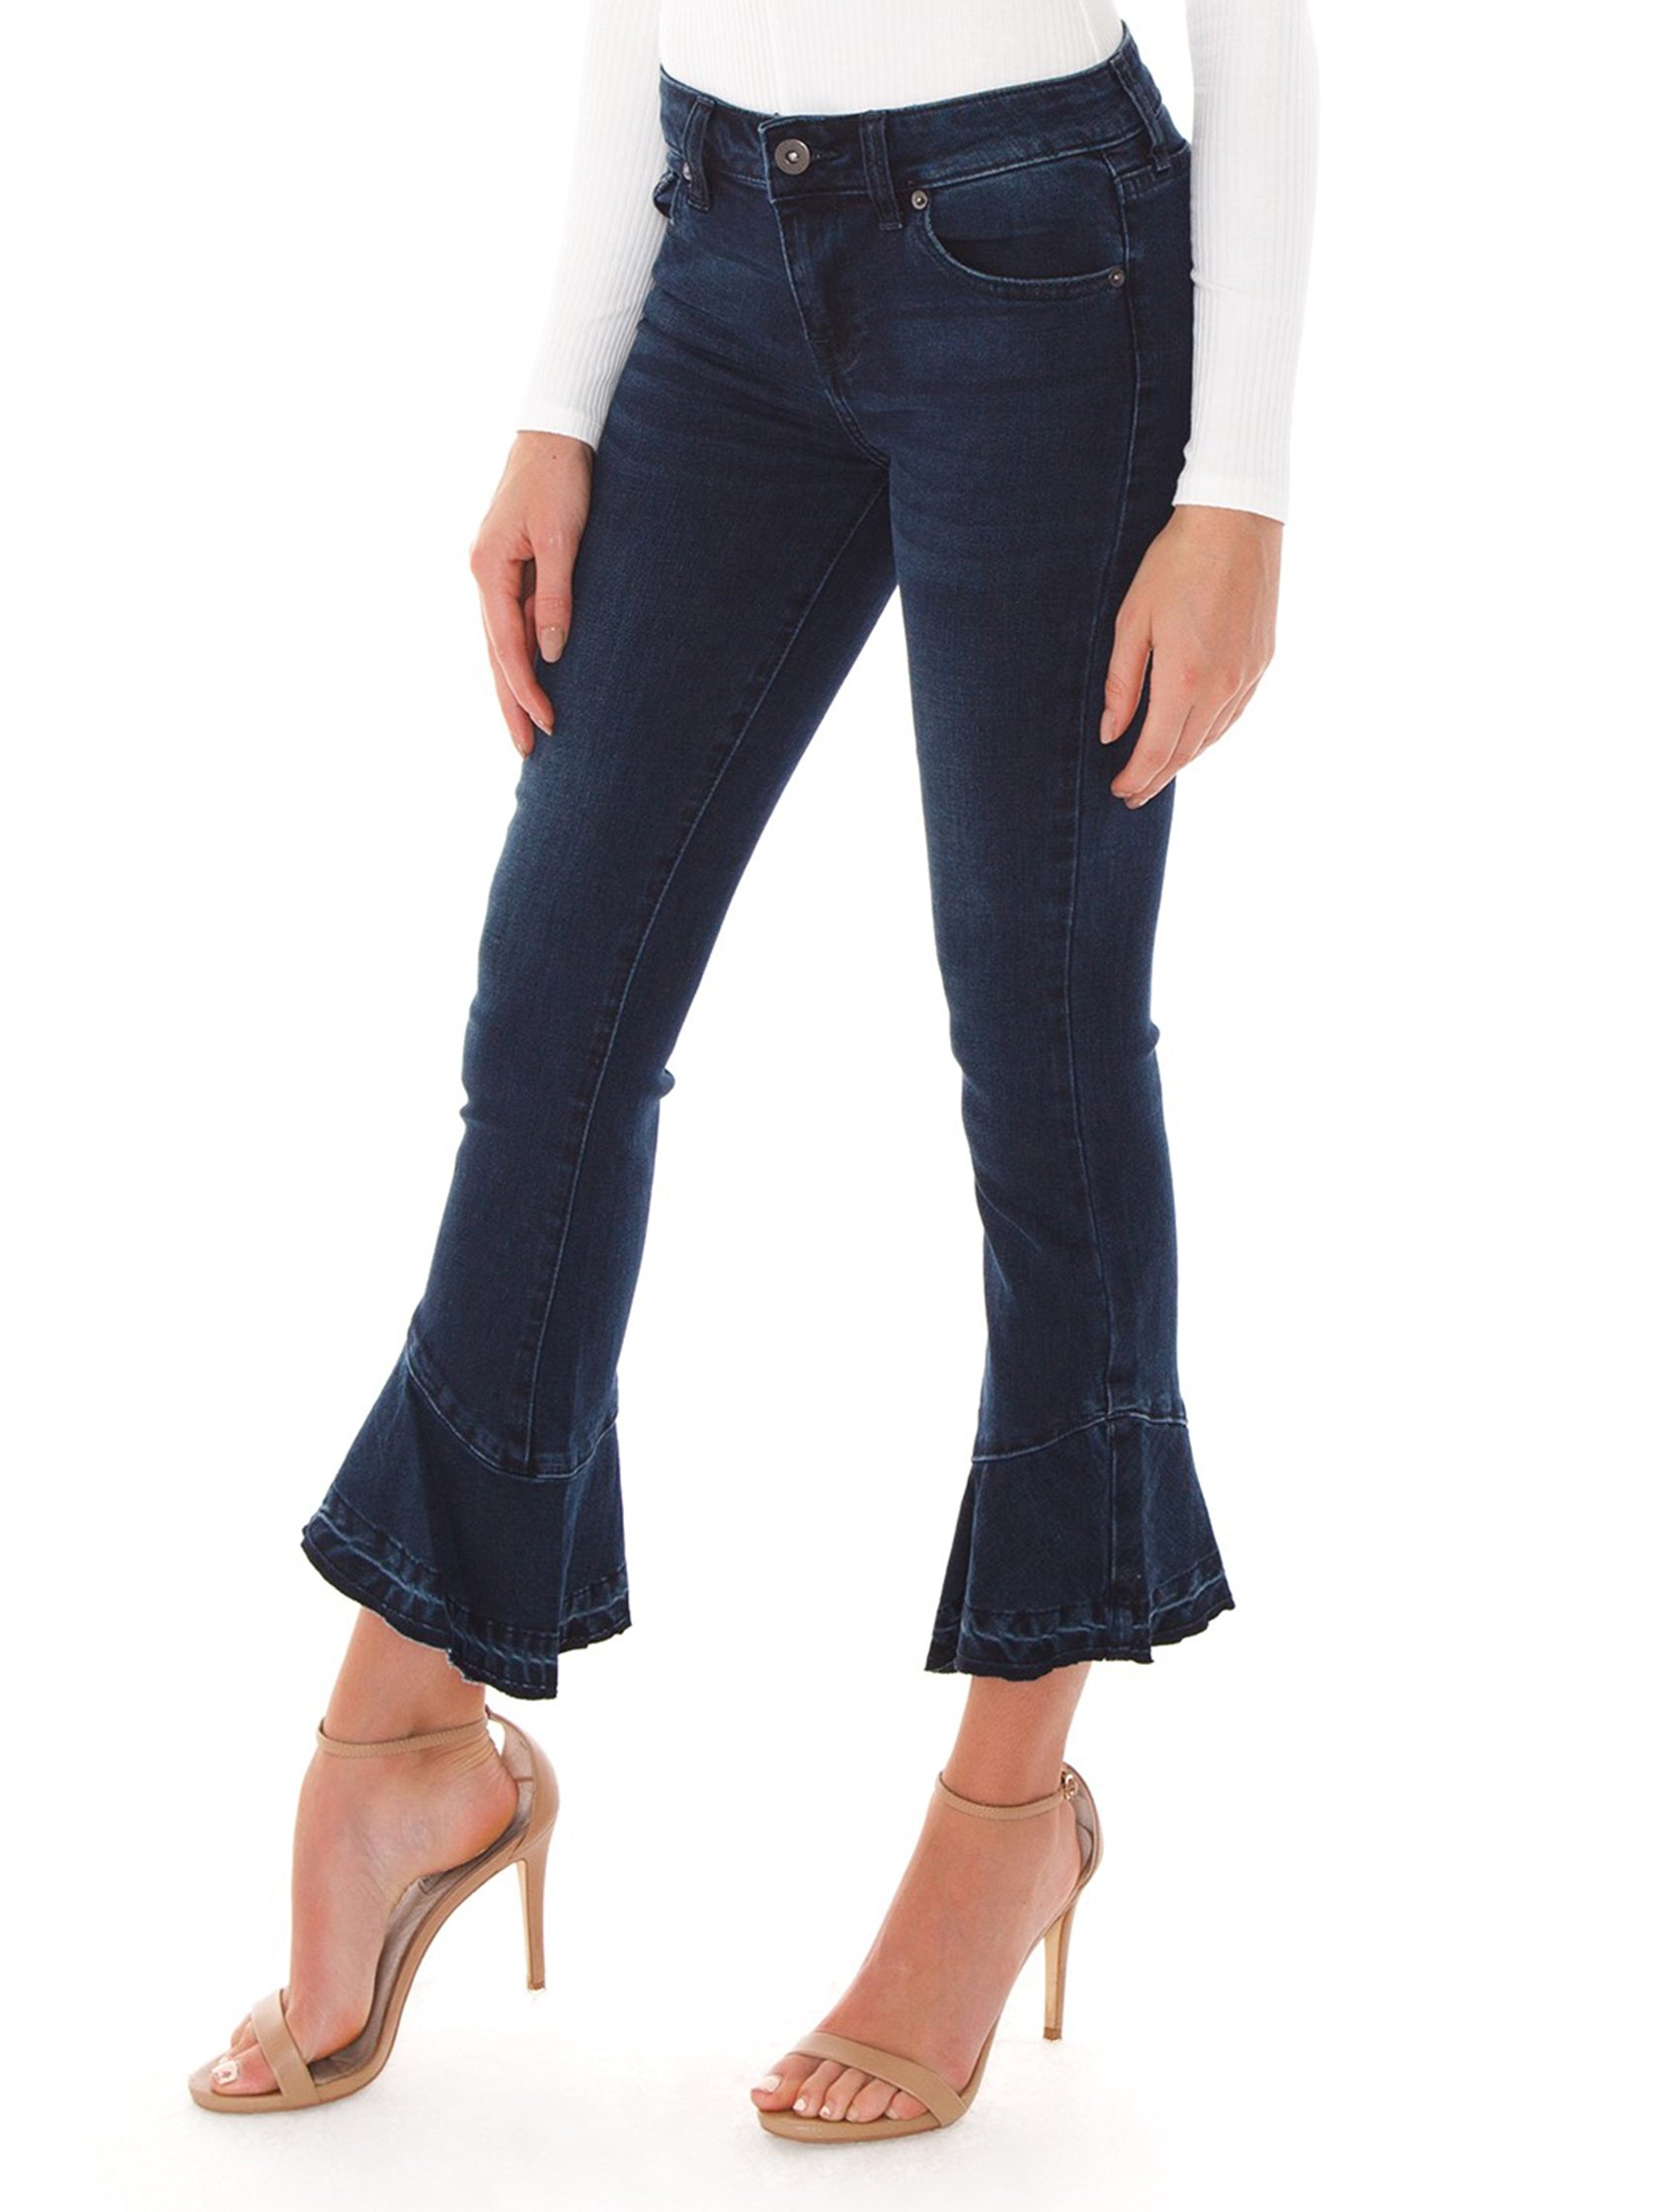 Women wearing a denim rental from PISTOLA called Marina Mide Rise Flounce Hem Jeans